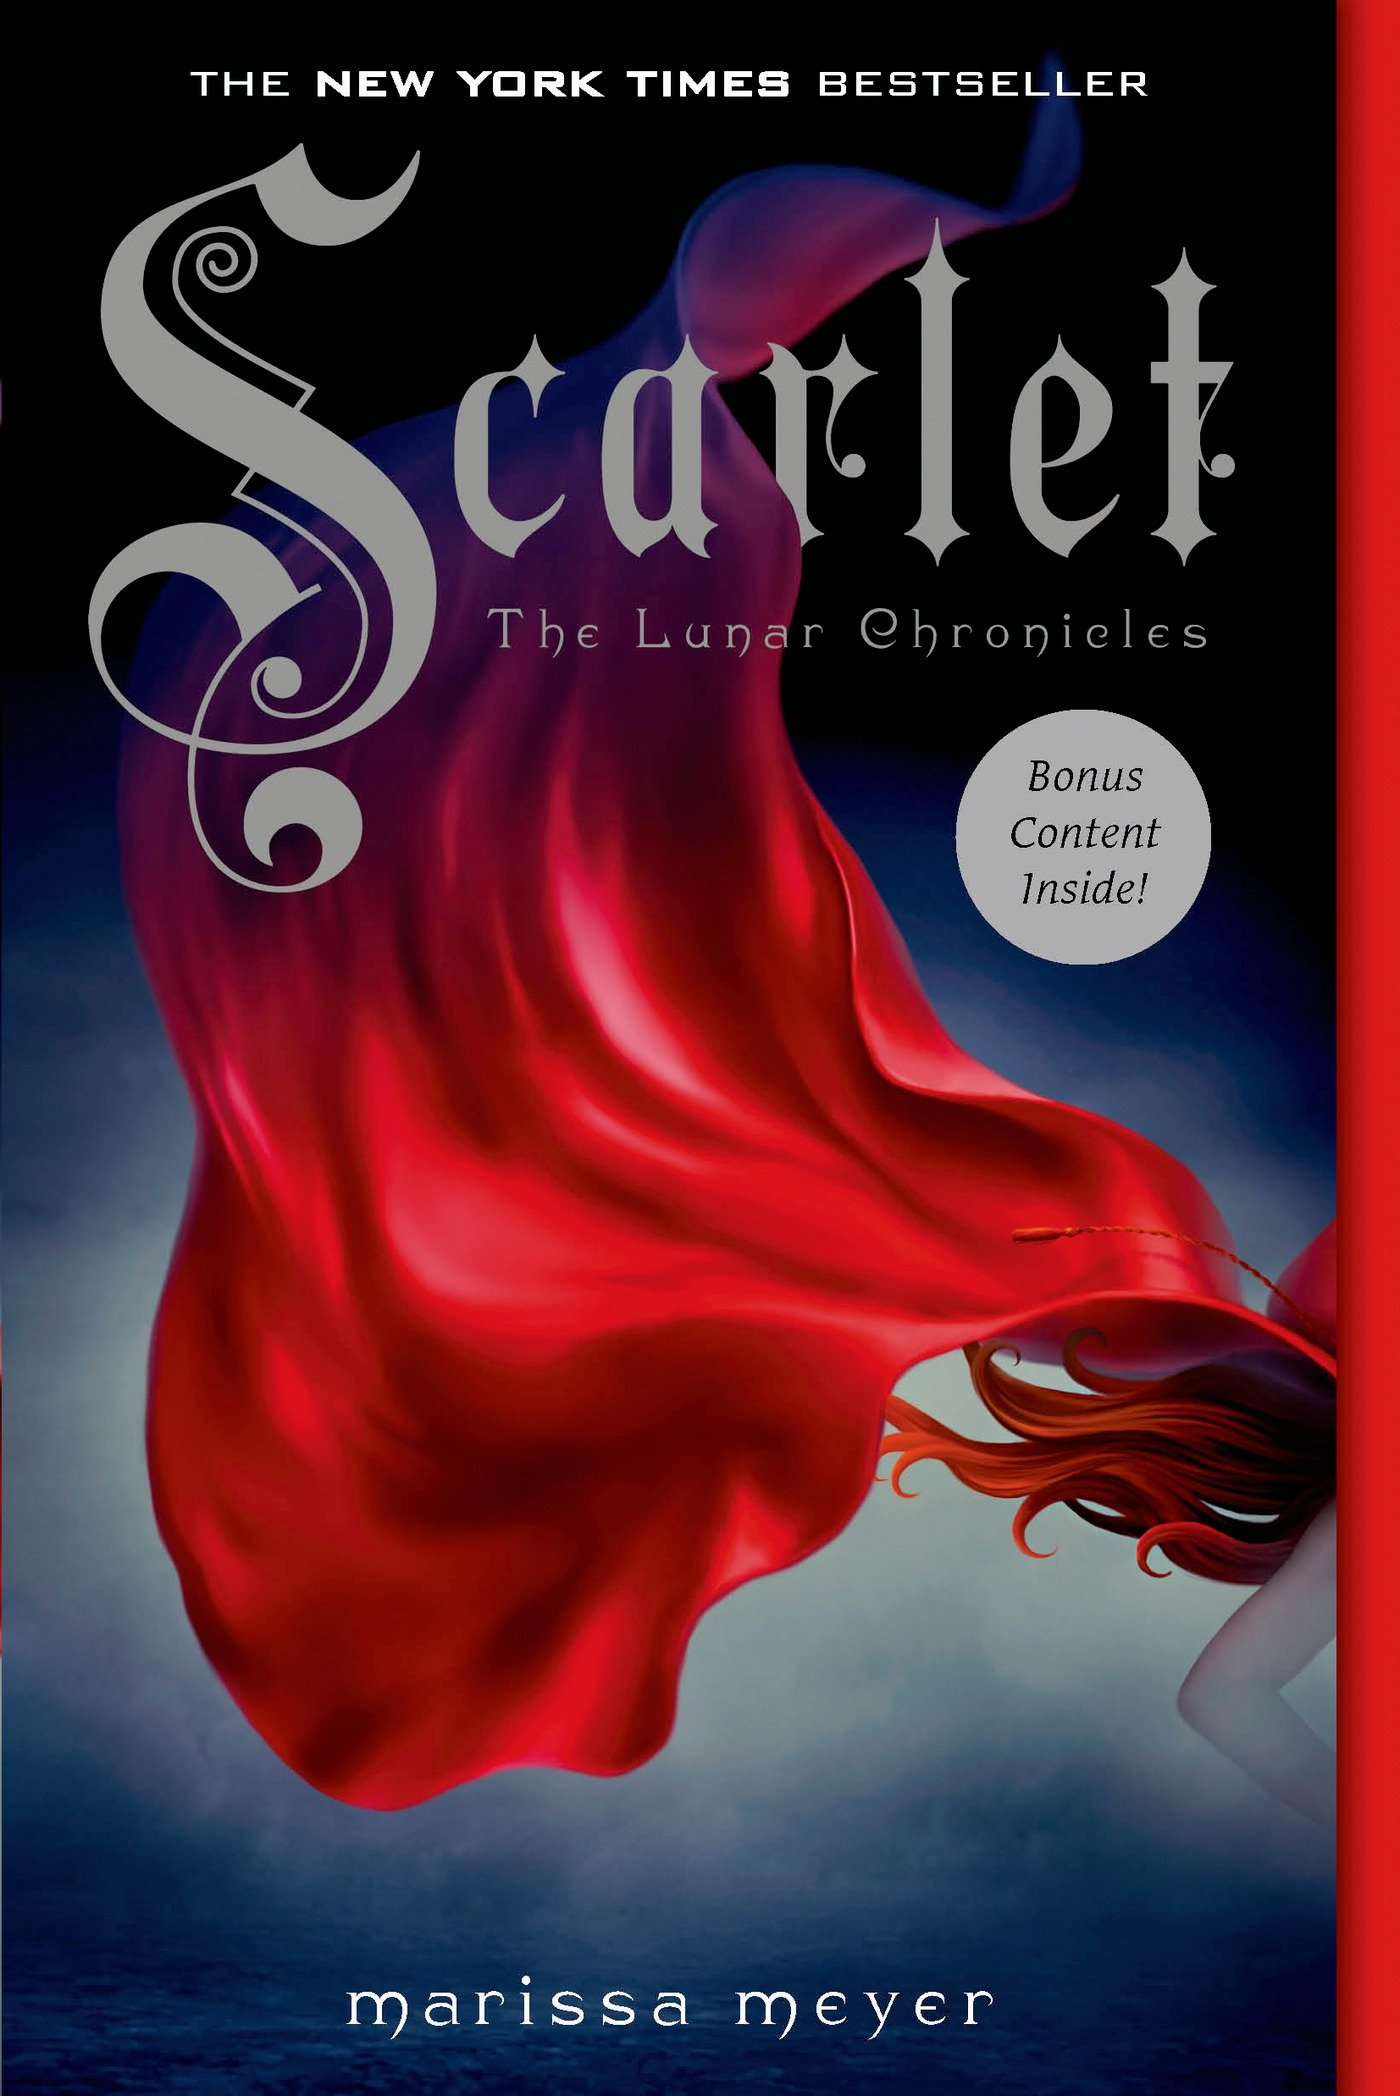 Book Review: 'Scarlet' by Marissa Meyer